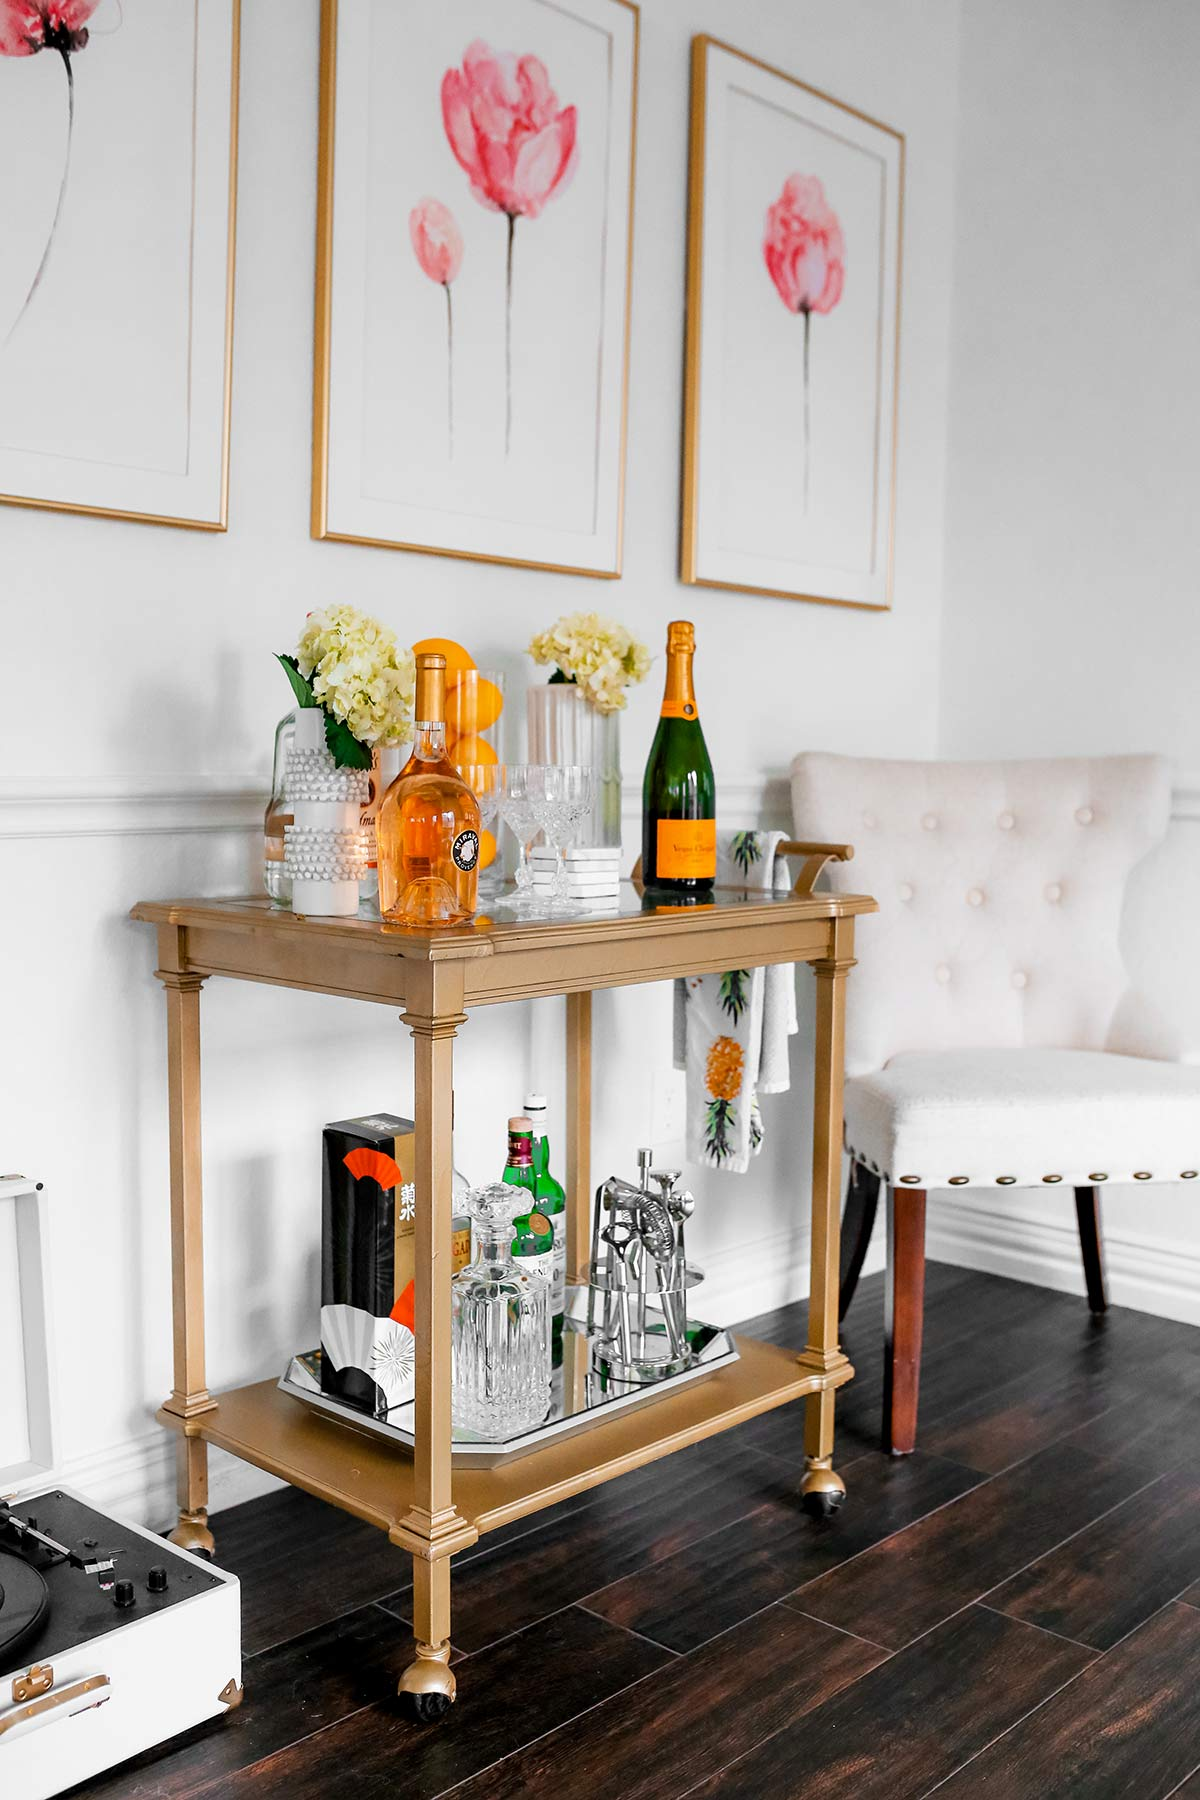 How To Style A Bar Cart For Spring Top Bar Cart Ideas And Inspiration